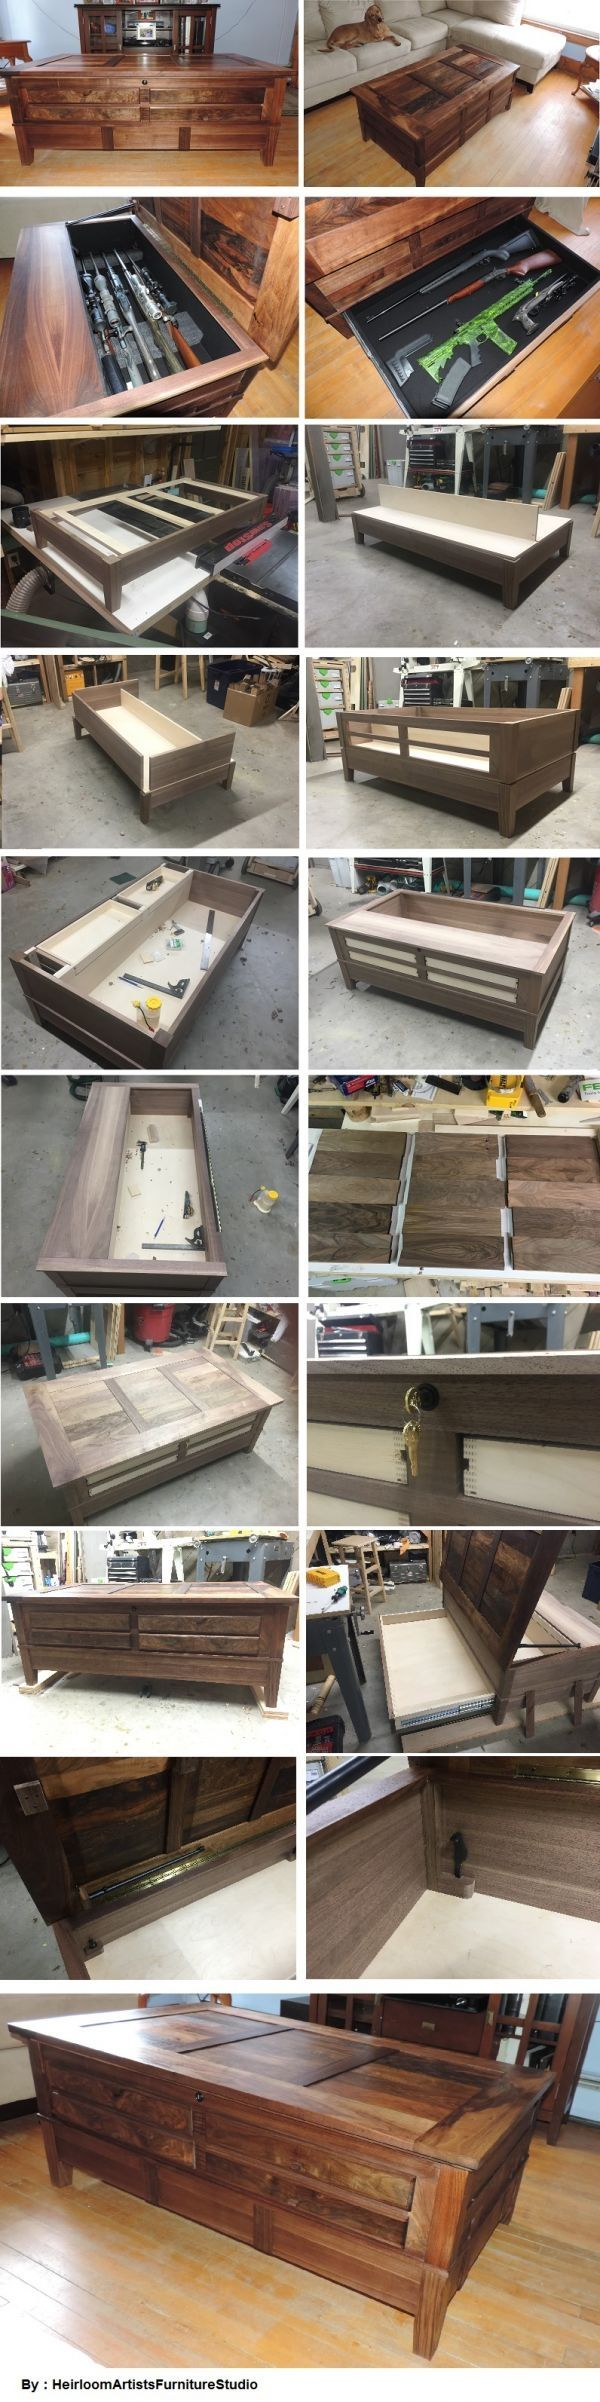 A walnut coffee table with hidden storage for rifles, built out of ...